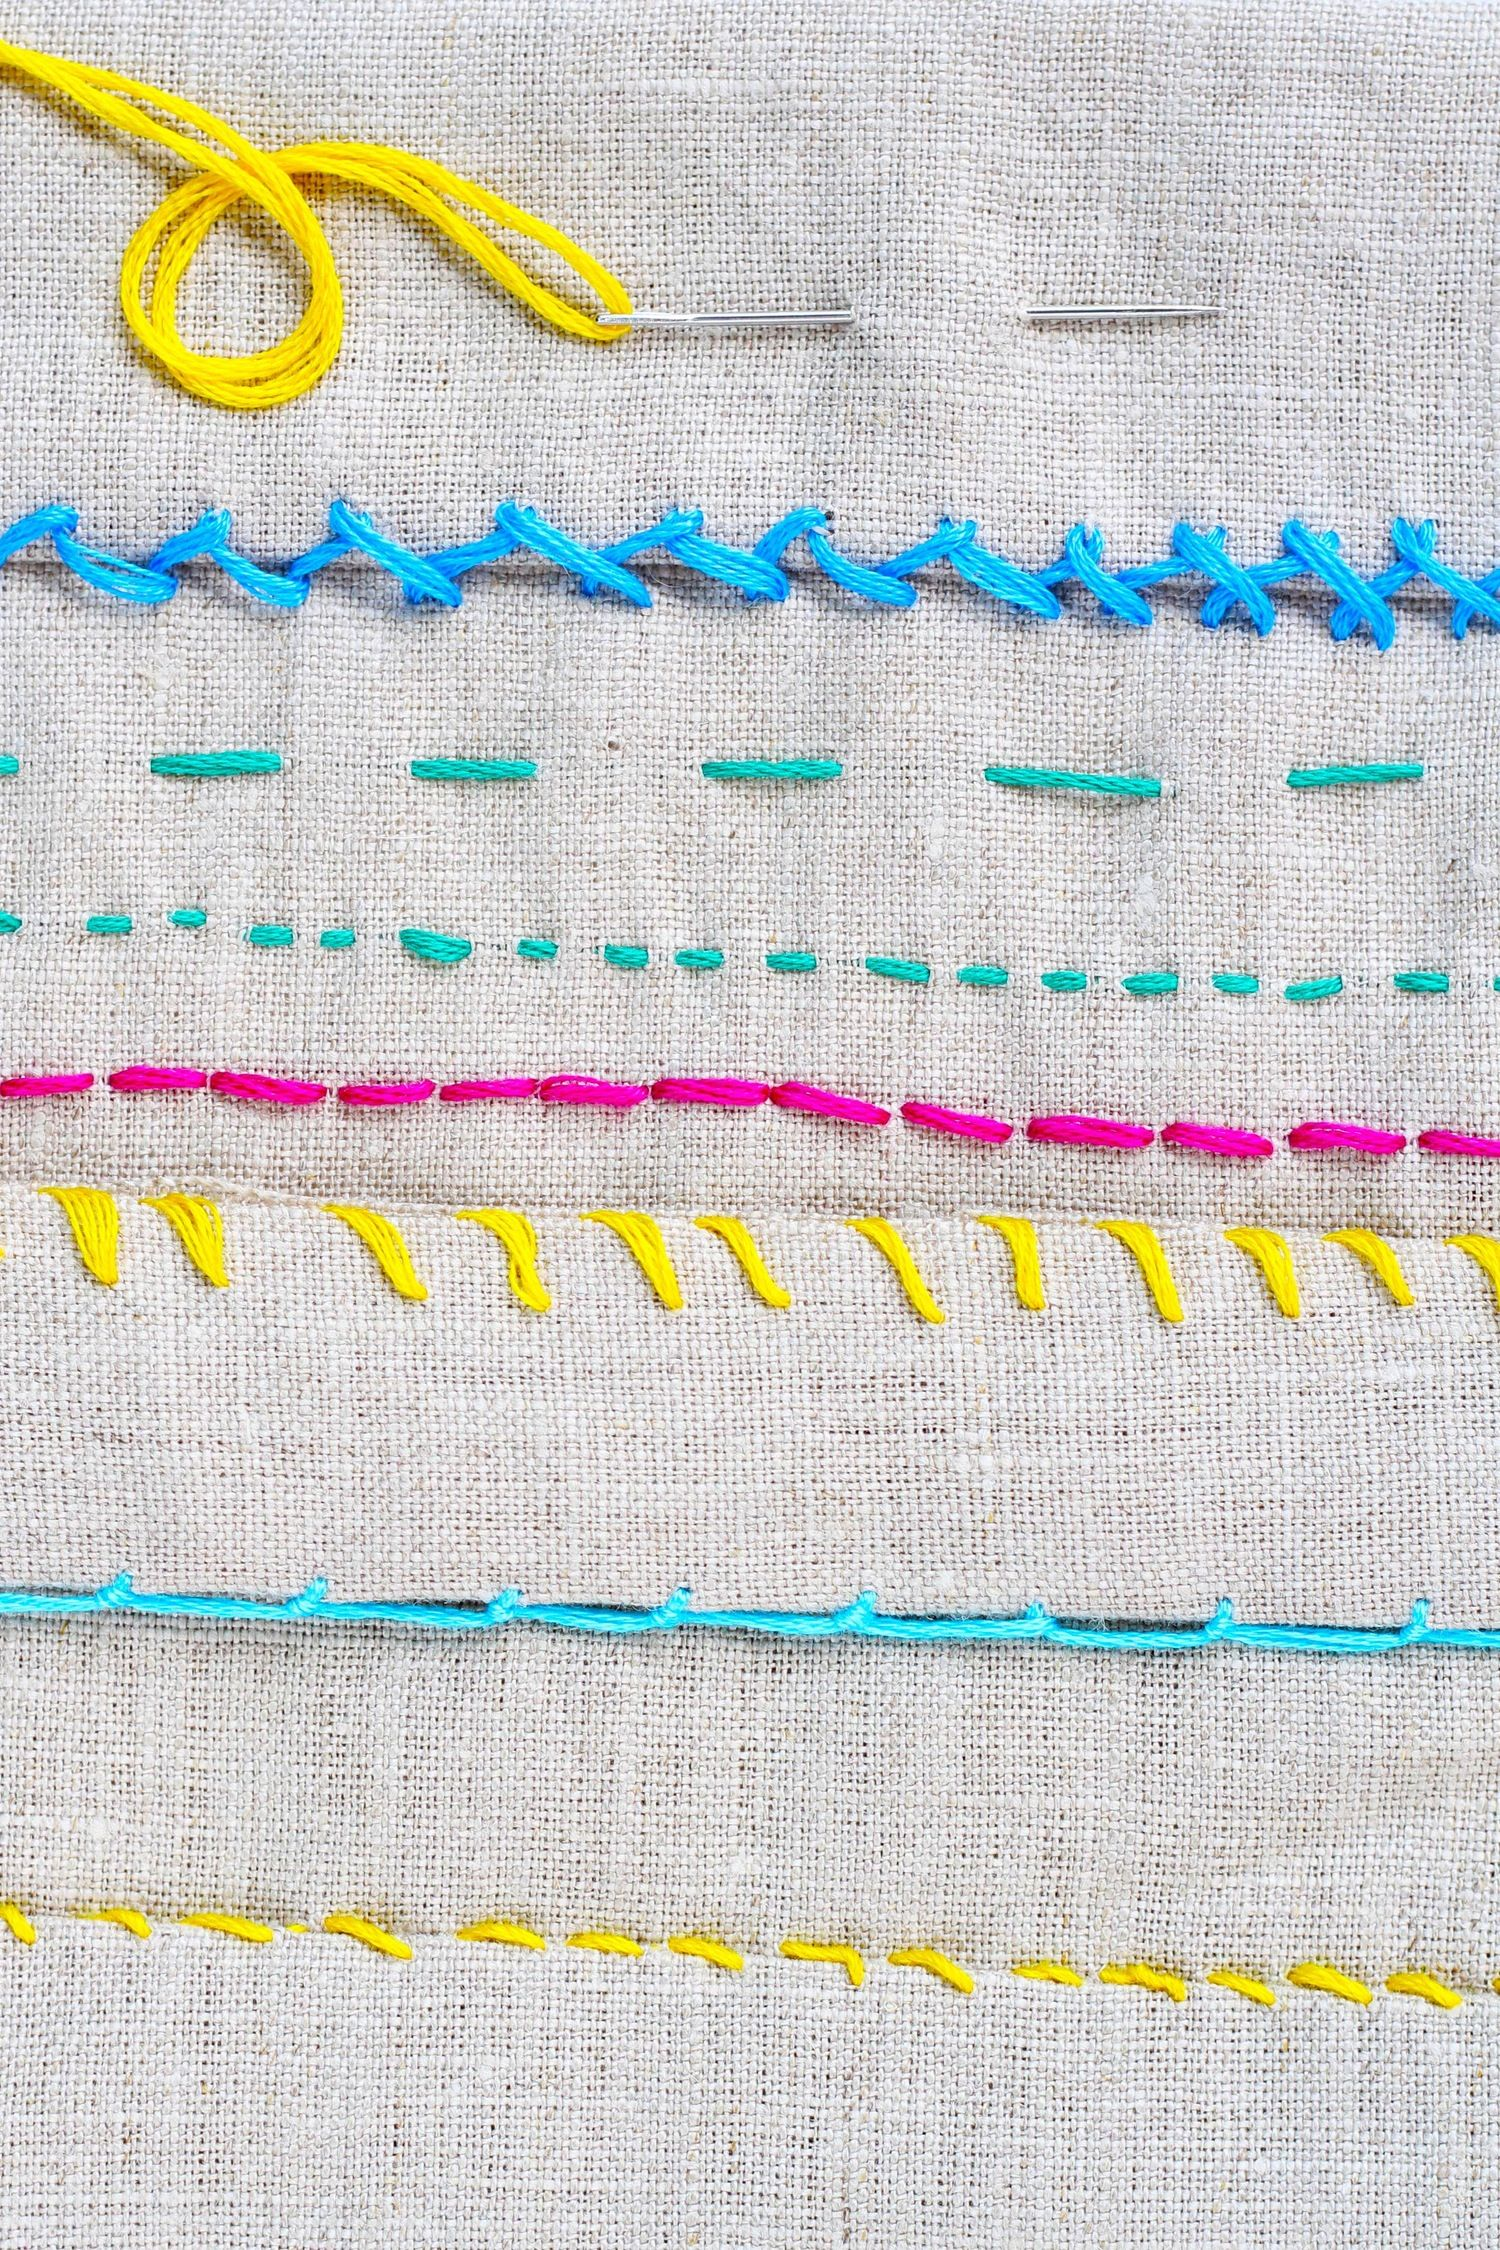 How To Sew By Hand 6 Helpful Stitches For Home Sewing